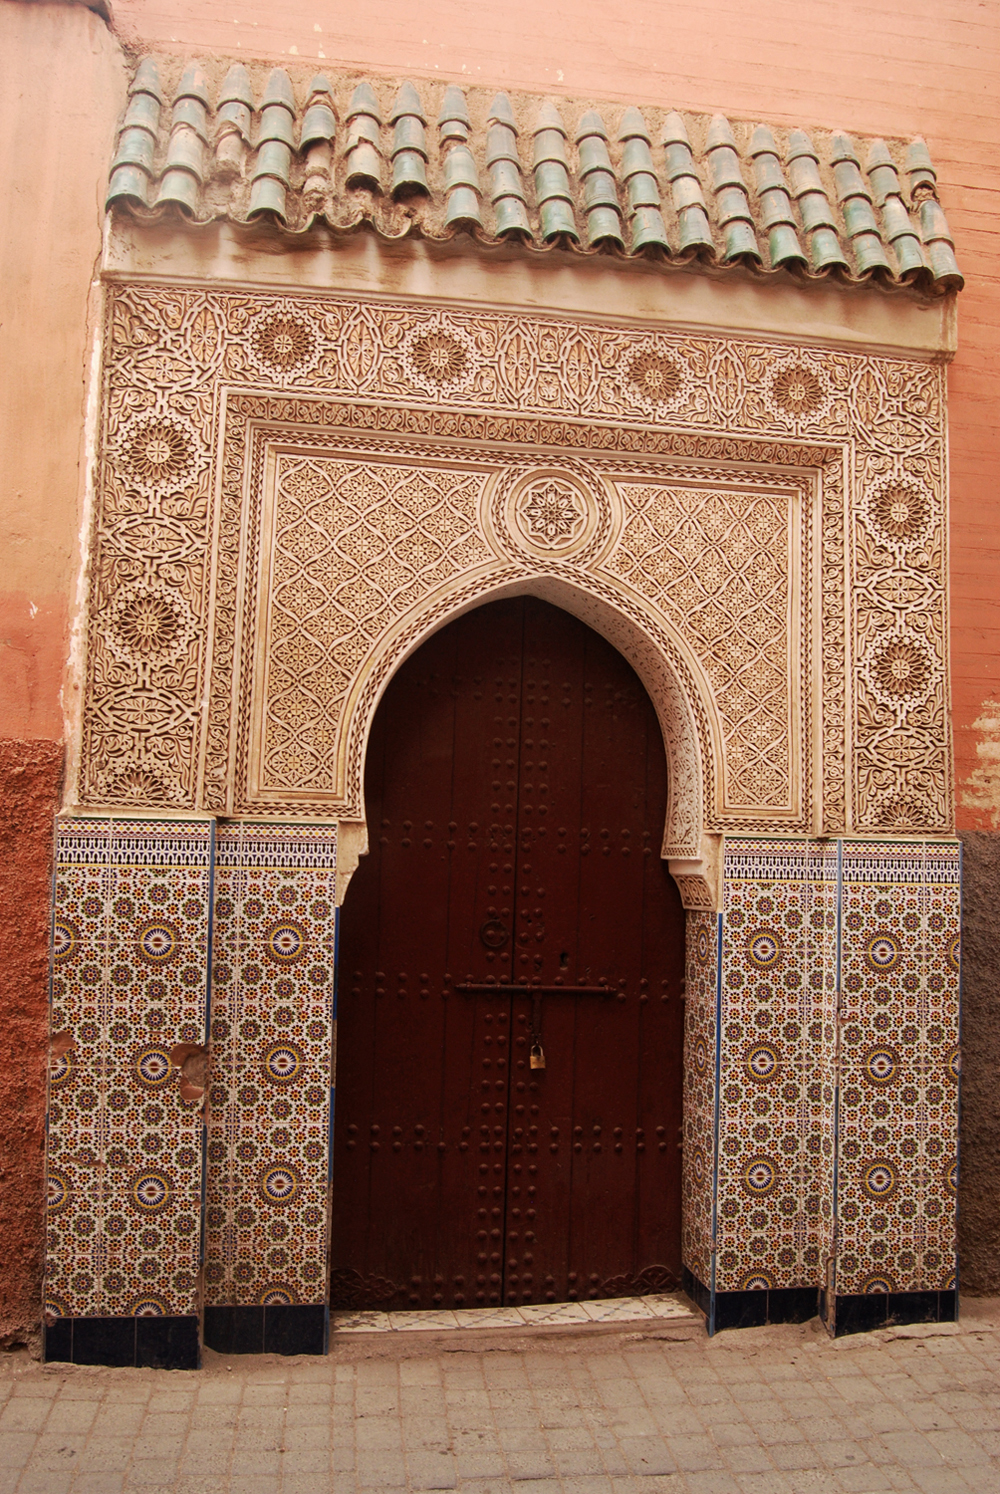 A local I met at a conference at the University Cadi Ayyad explained that for historic, cultural and climatic reasons, social and family life happens inside a riad (a traditional Moroccan house) or a building. Therefore, a windowless, three story high wall might enclose a colorful and busy reality of everyday life.